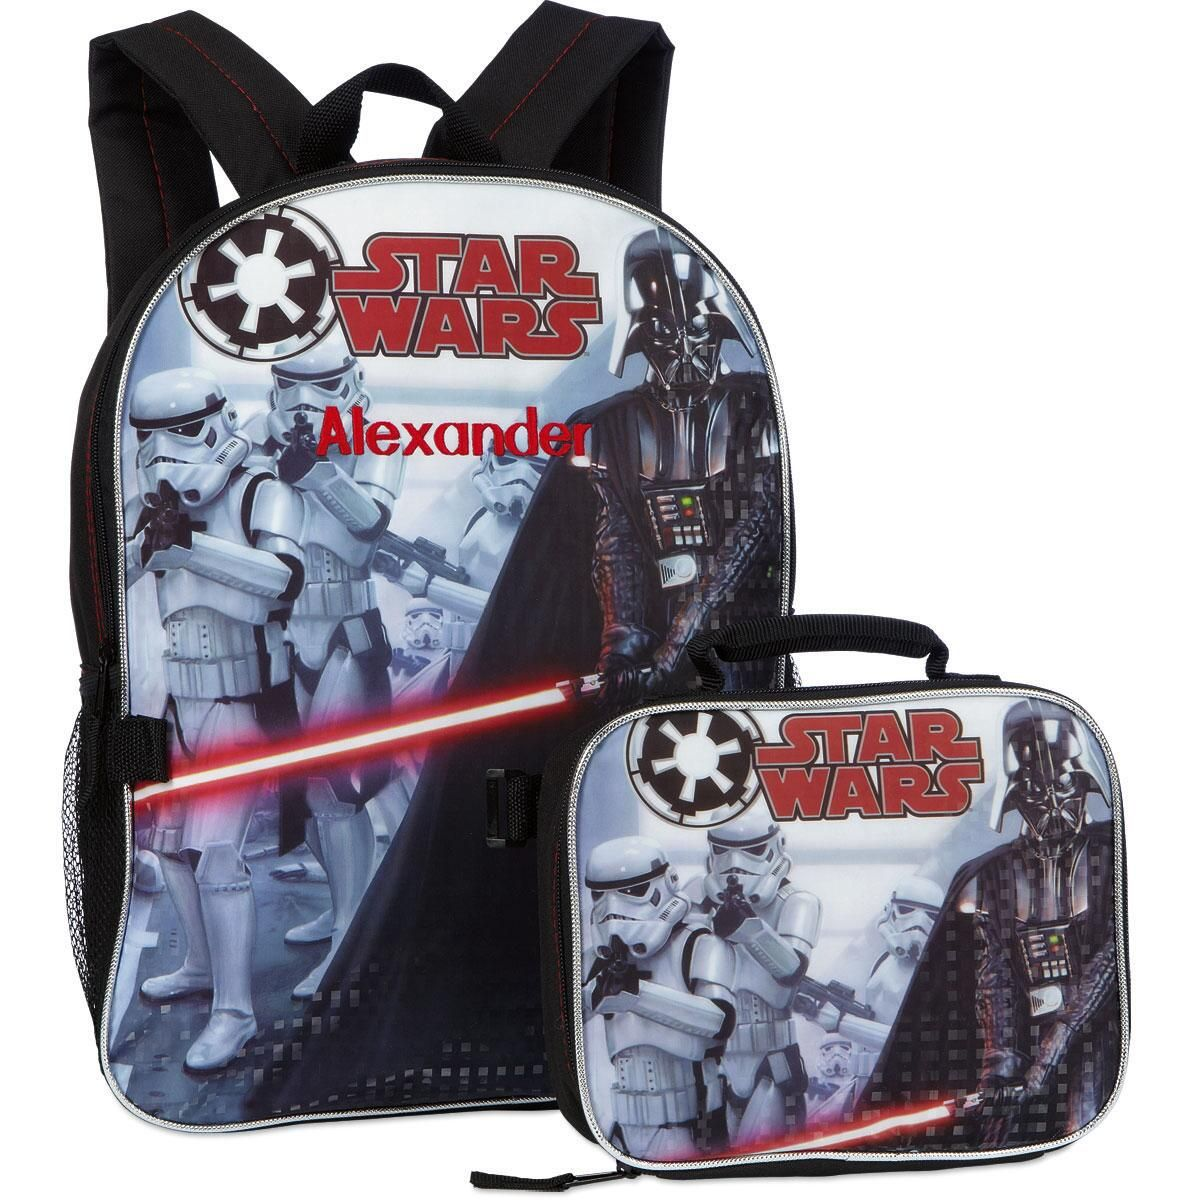 Star Wars® Backpack with Attached Lunch Bag